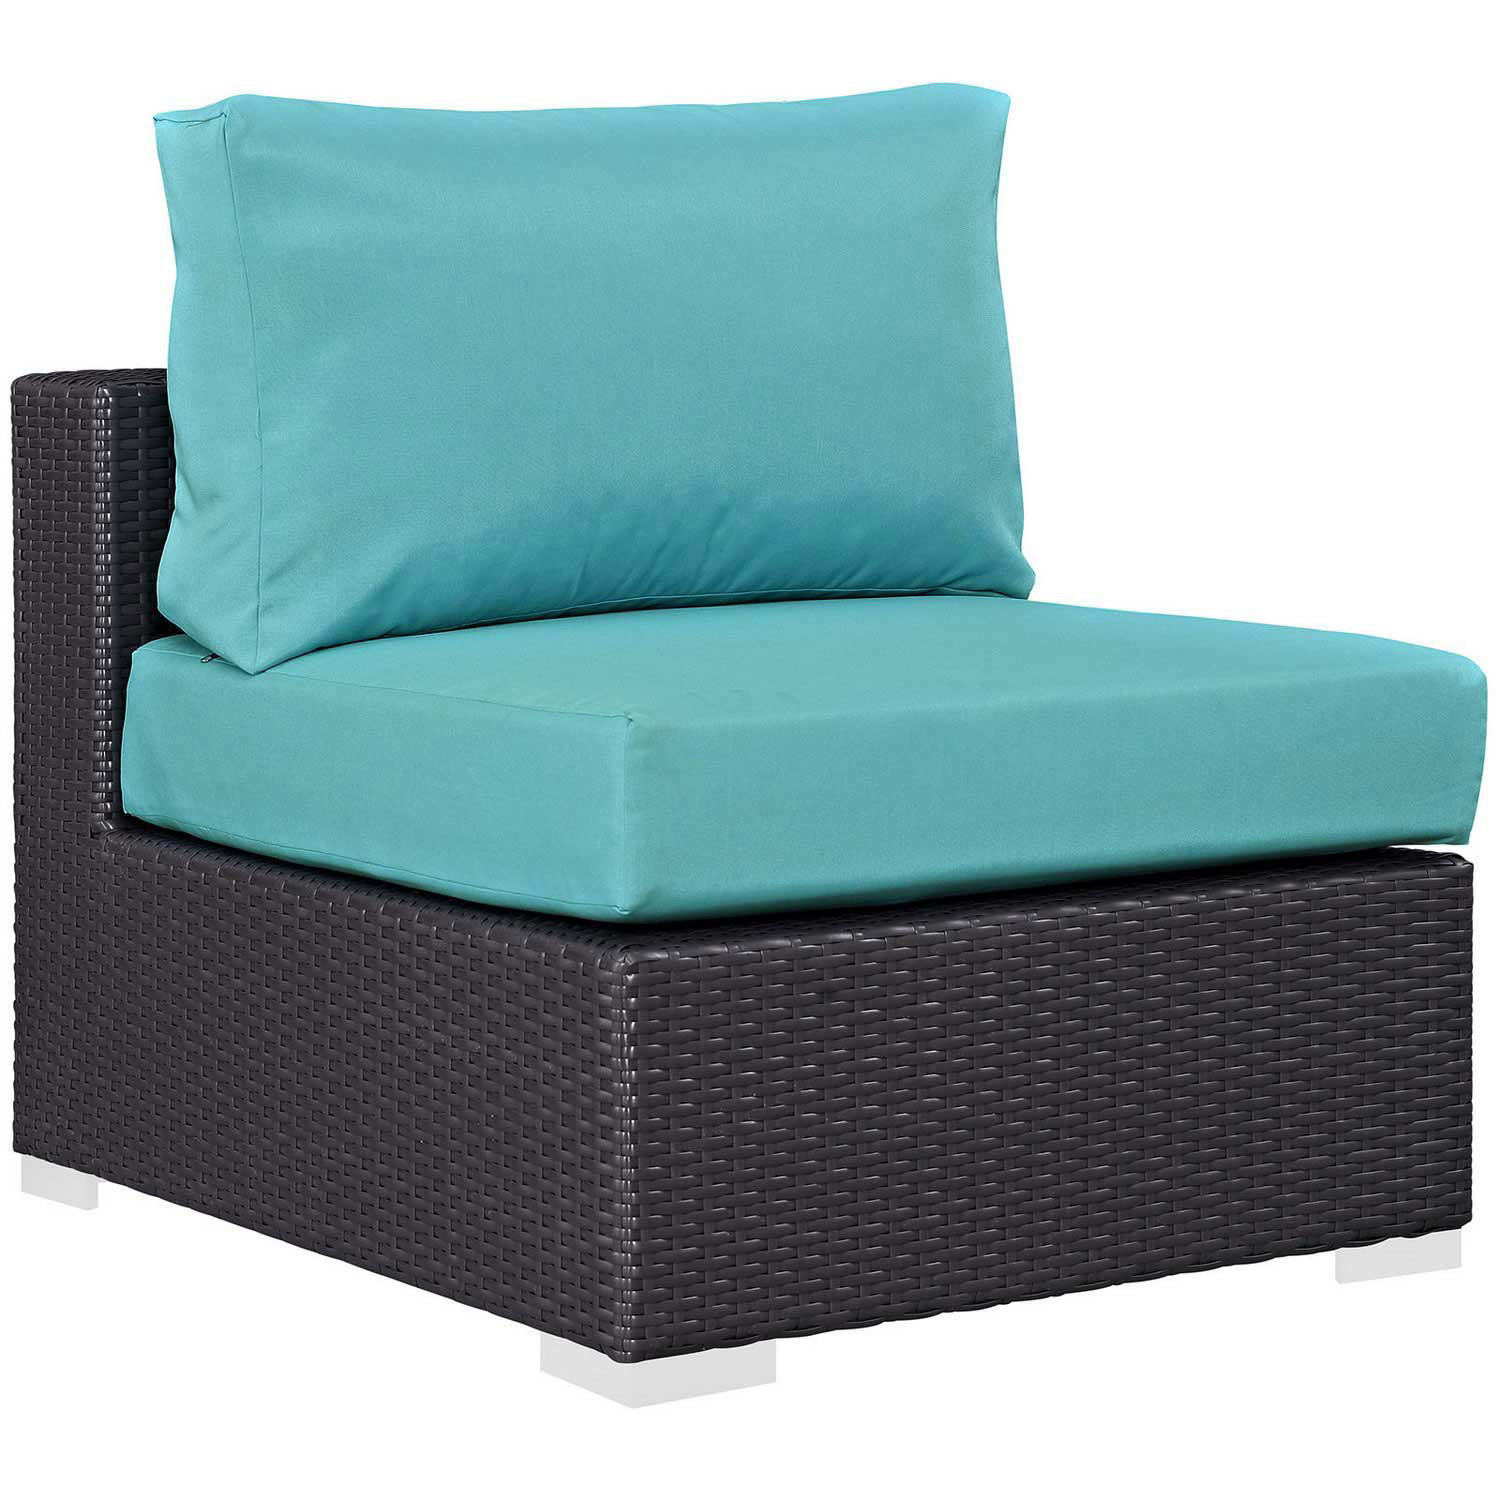 Modway Convene Outdoor Patio Armless - Espresso Turquoise